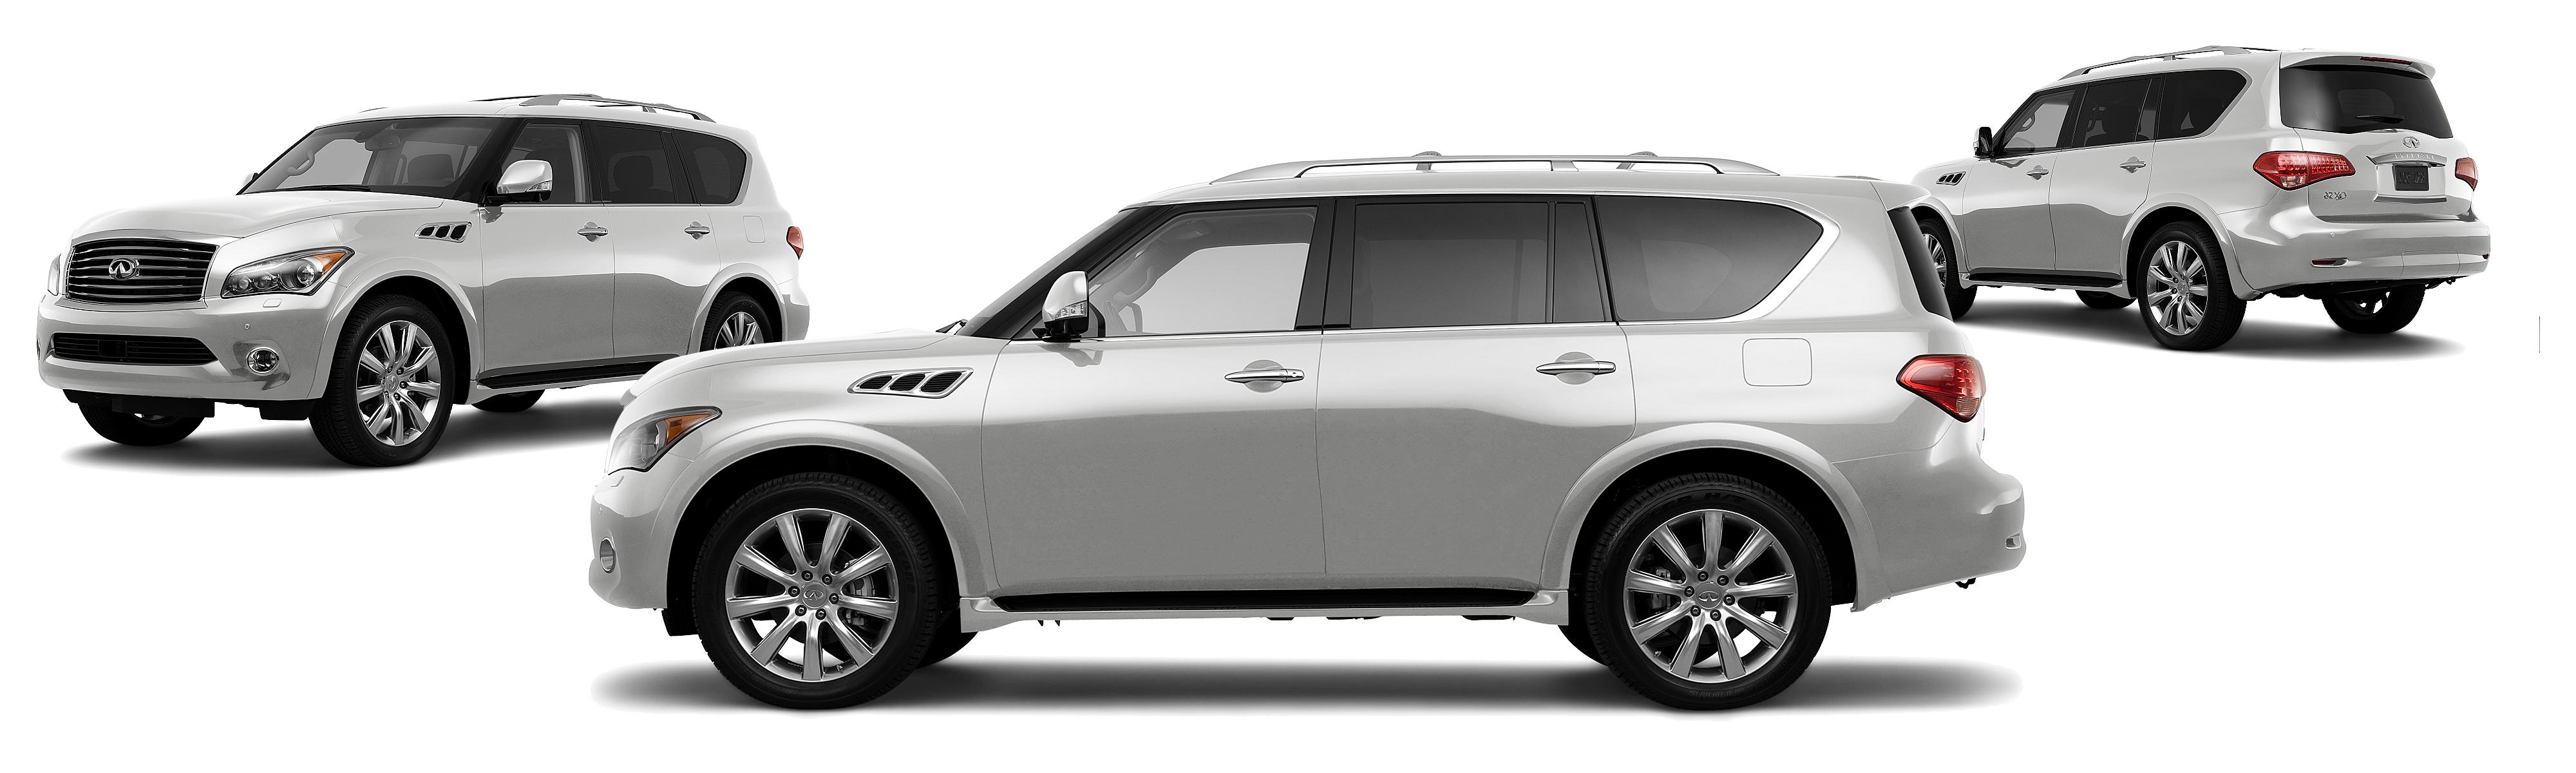 photos sale file for infinity cheap pictures photo image asp review specification infiniti download prices